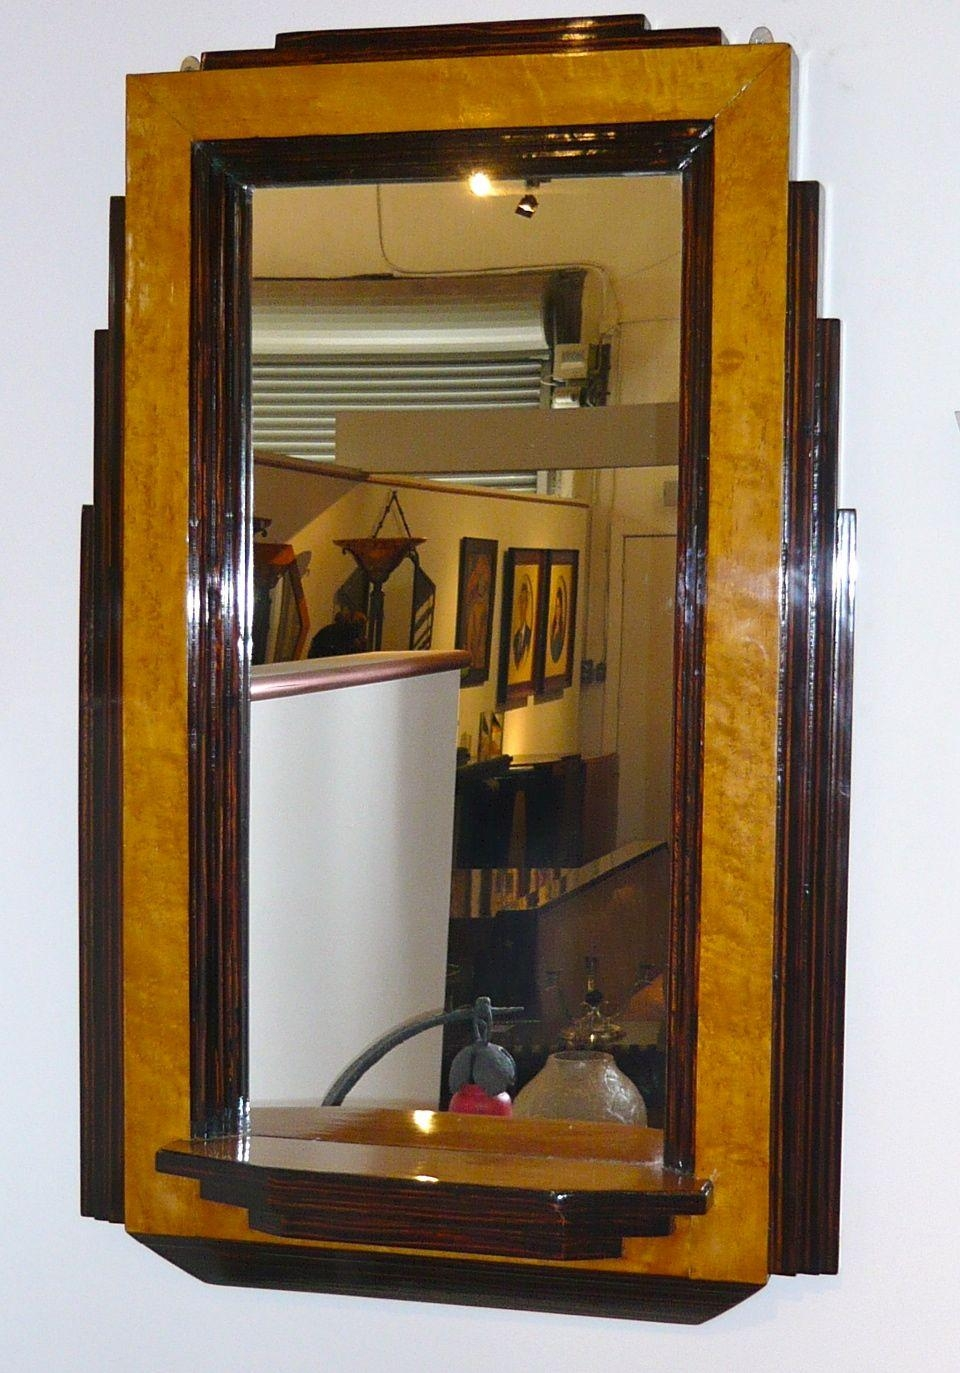 Art Deco Bedroom Furniture For Sale | Art Deco Collection Inside Large Art Deco Mirrors (Image 3 of 20)